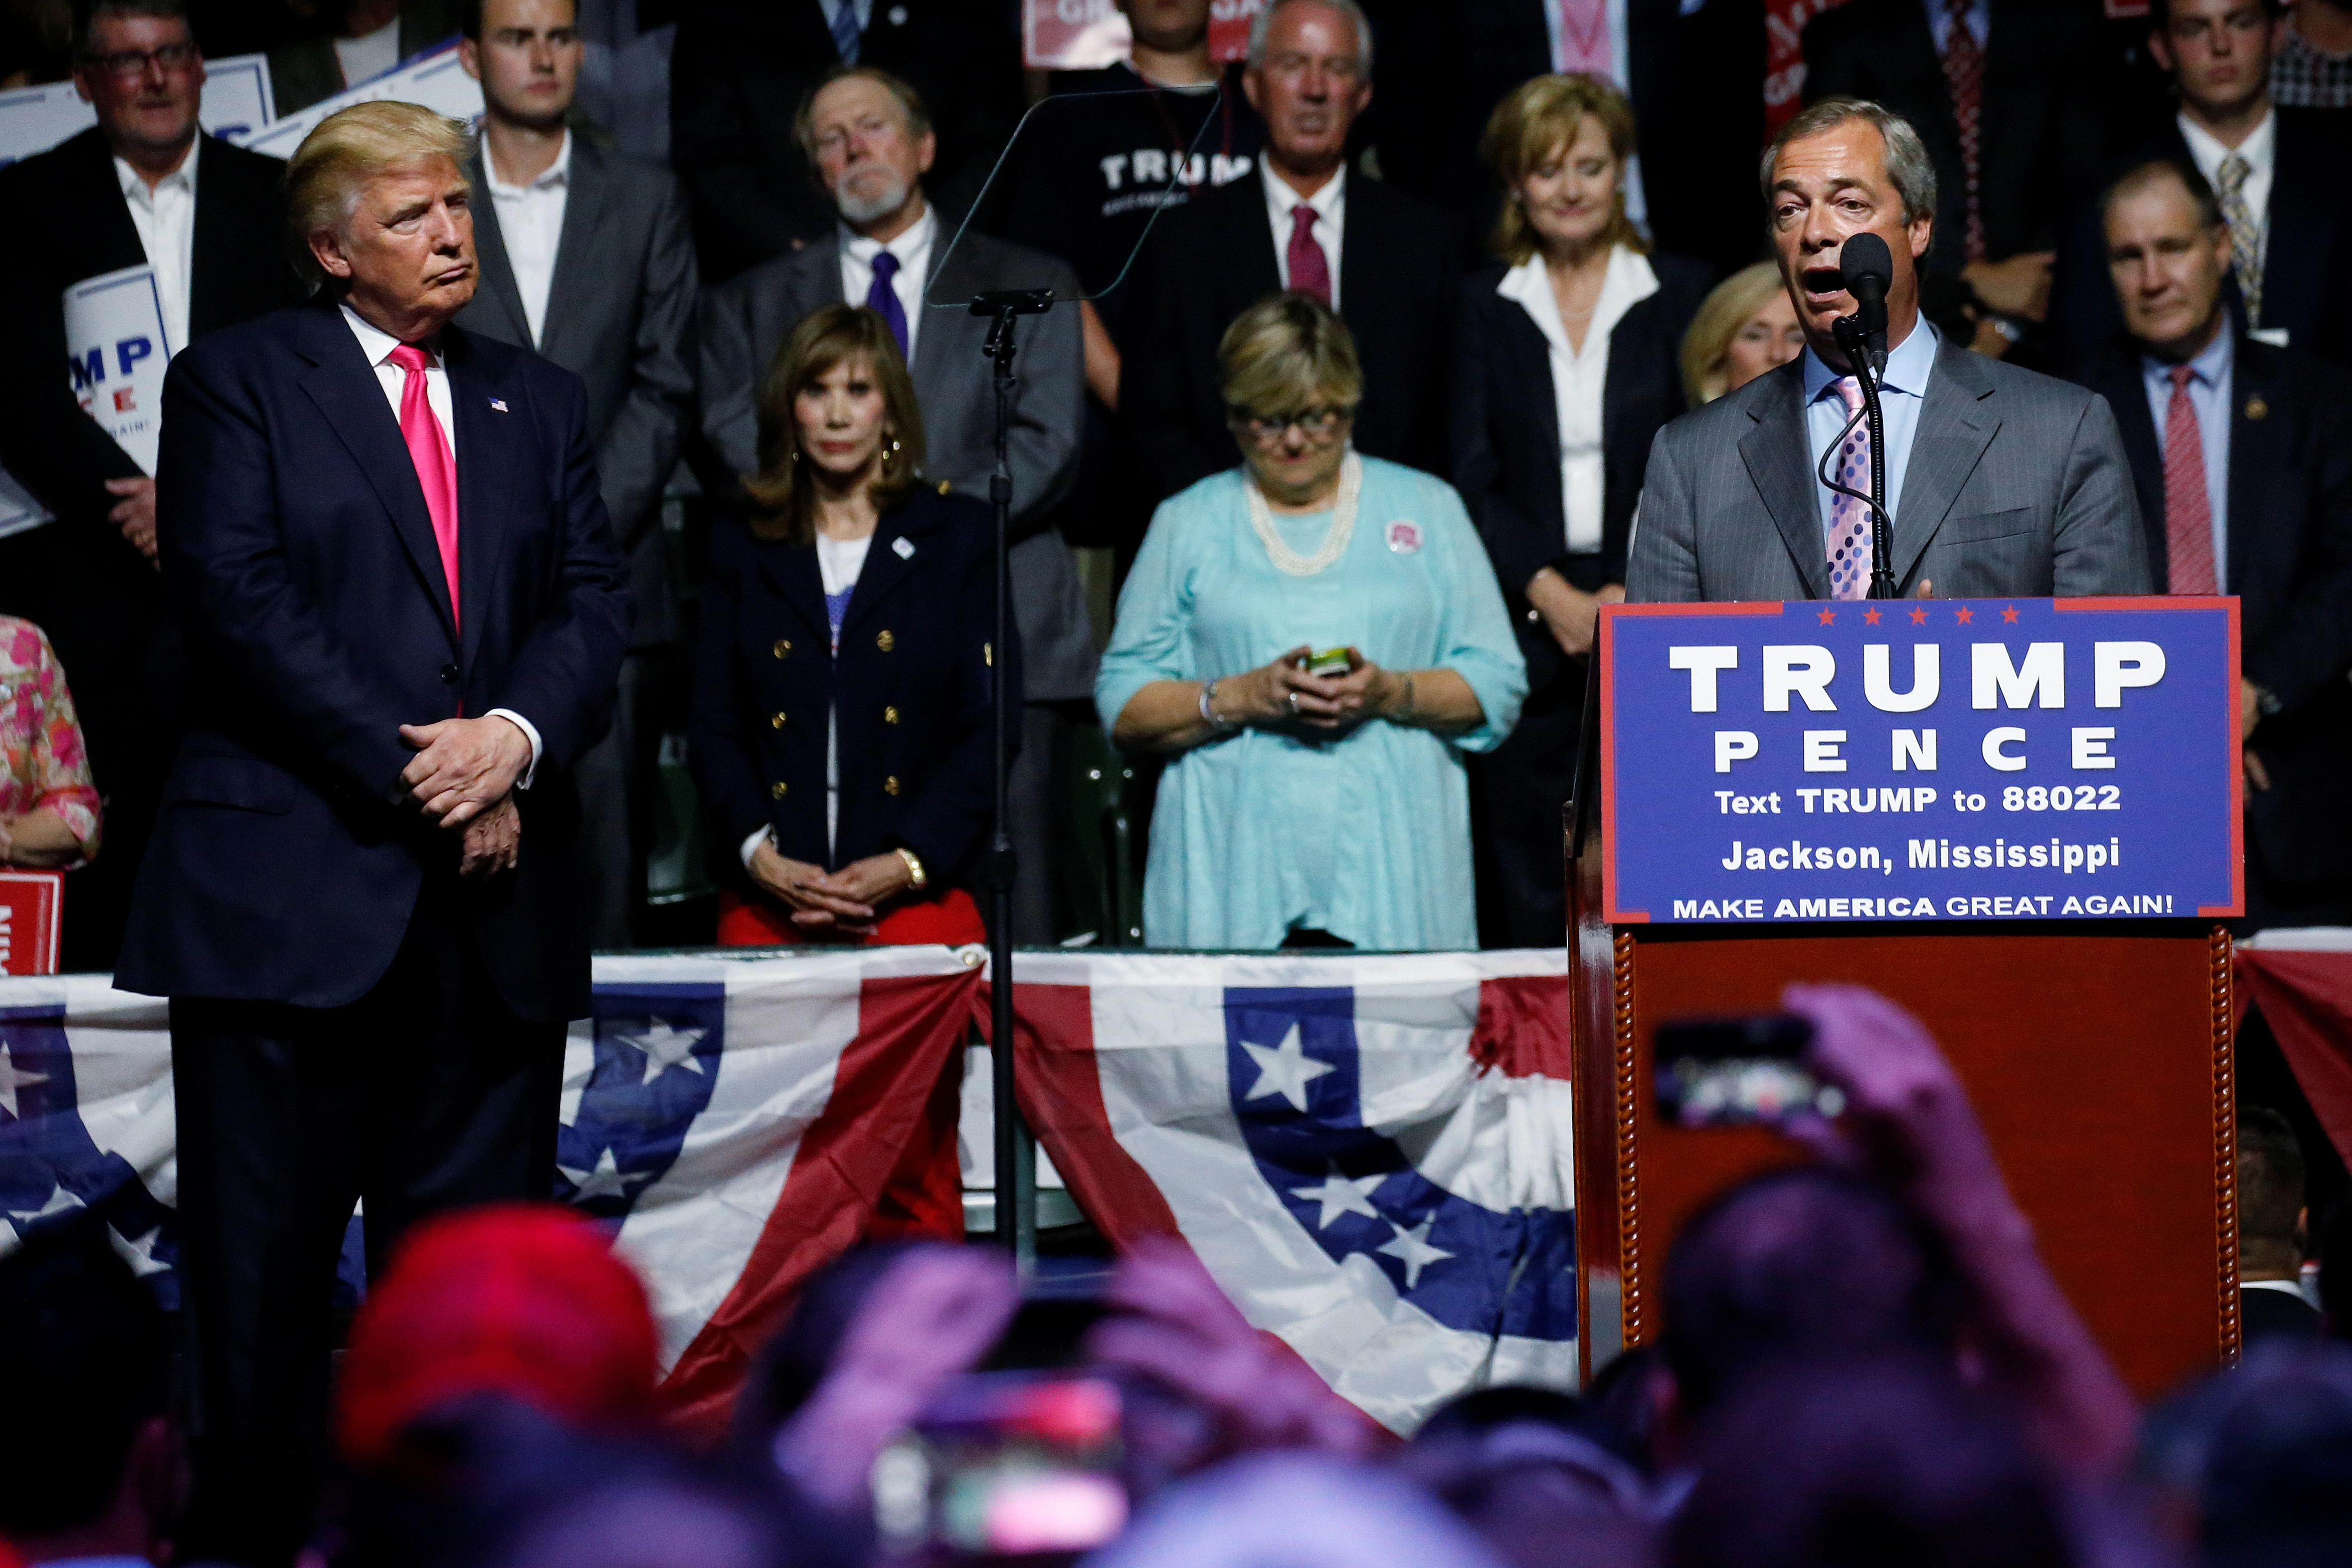 Ahead of UK visit, Trump praises Brexit-supporting 'friends' Johnson and Farage